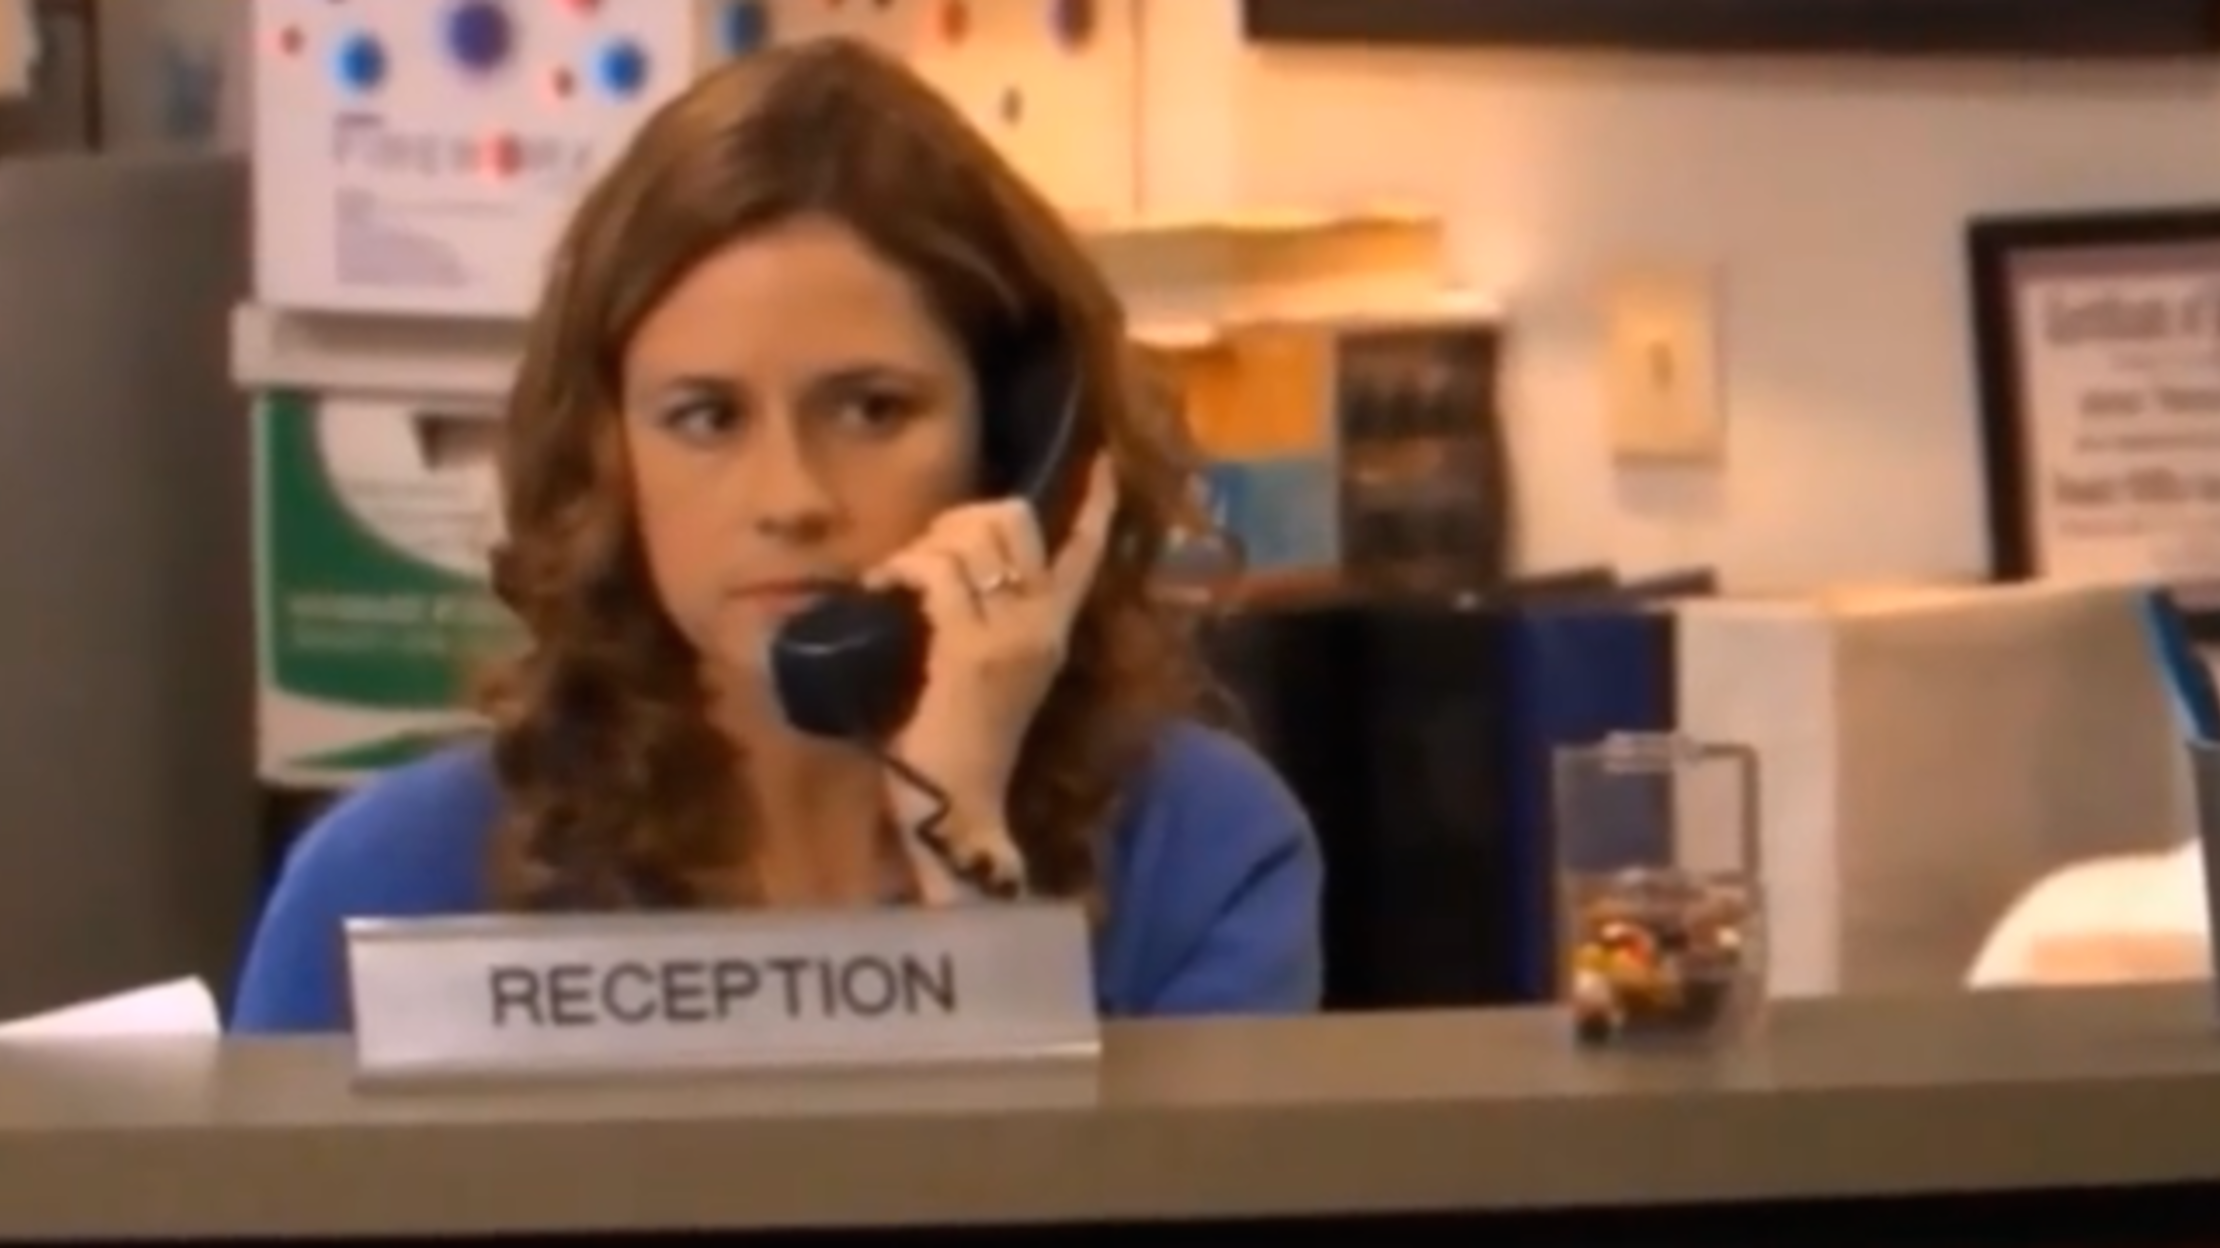 21 Things You Might Not Have Known About The Office | Mental Floss